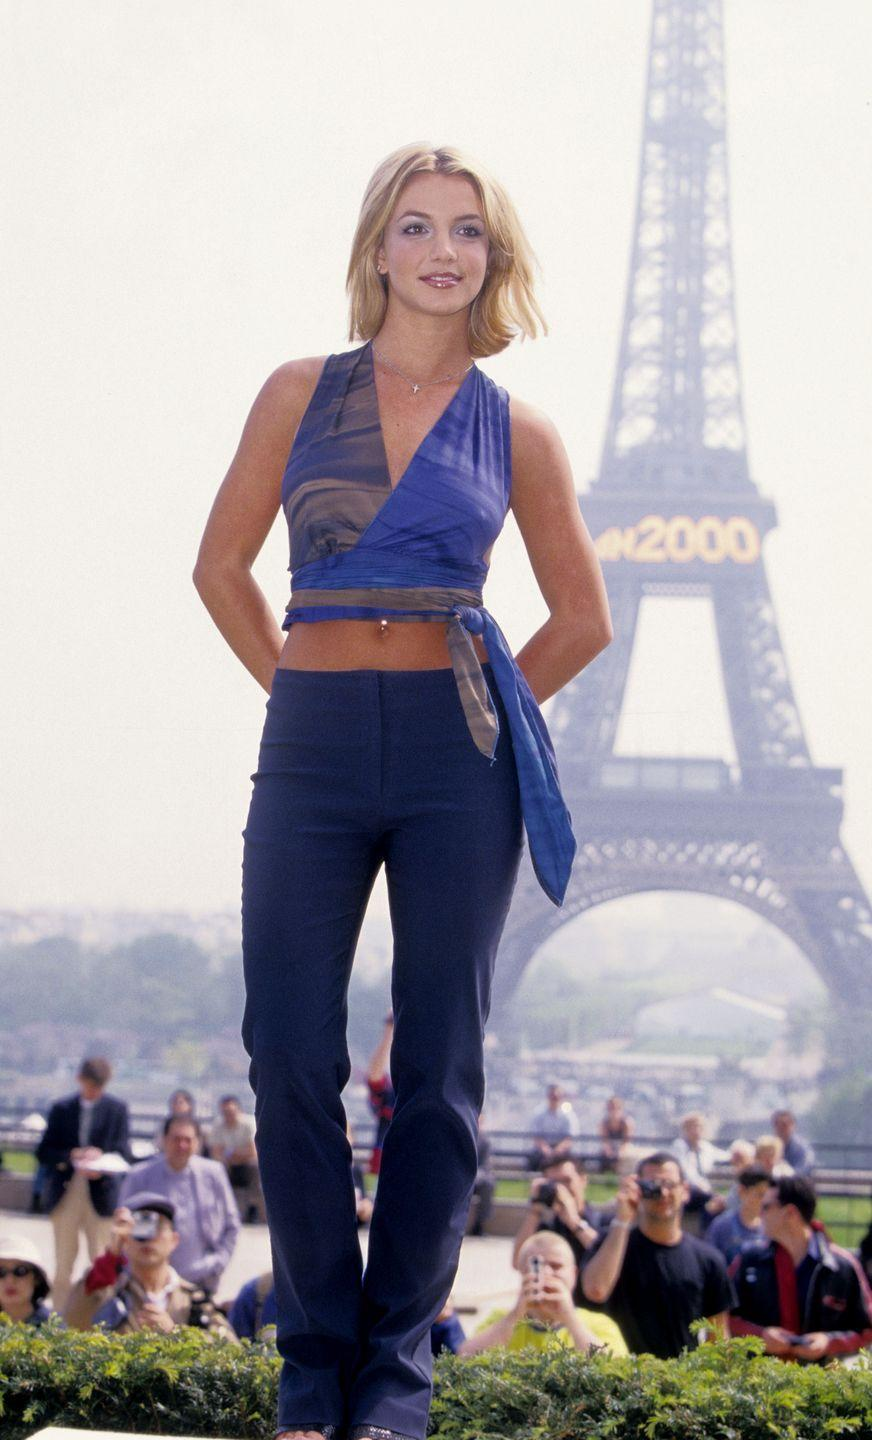 <p>Britney Spears launches her second album, Oops!... I Did It Again at the Eiffel Tower in Paris, France. </p>